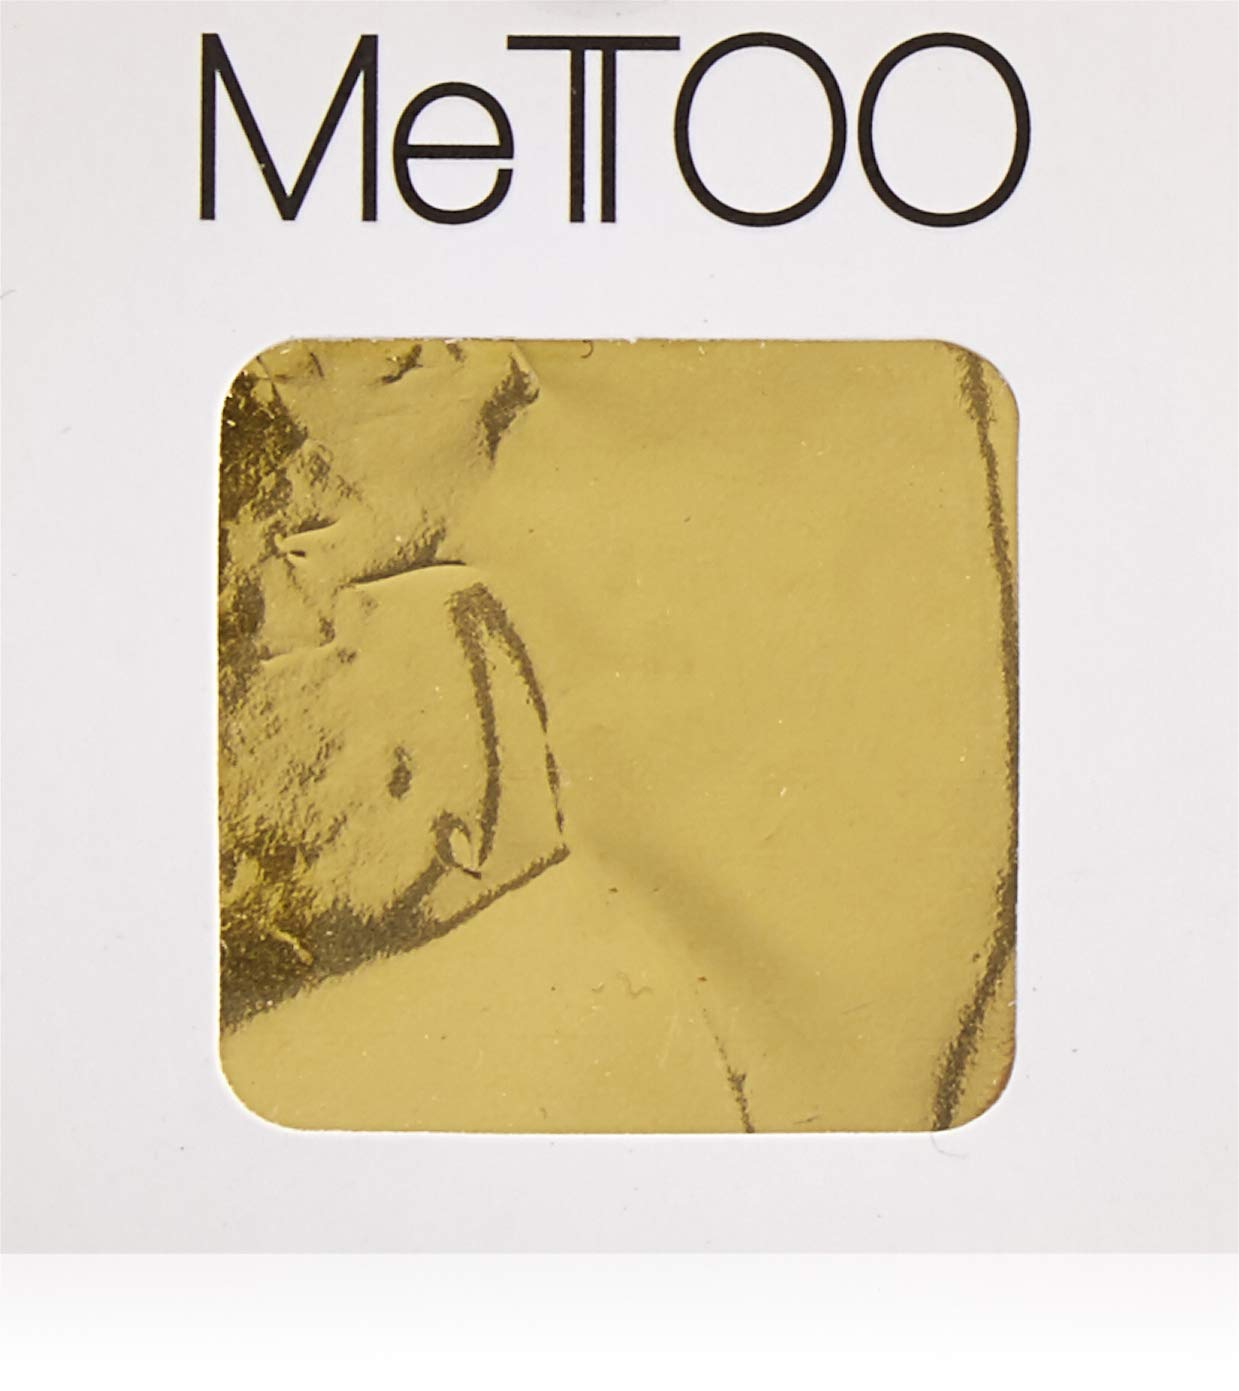 Mettoo Oriental Gold Body Foil, 200 Count by Mettoo